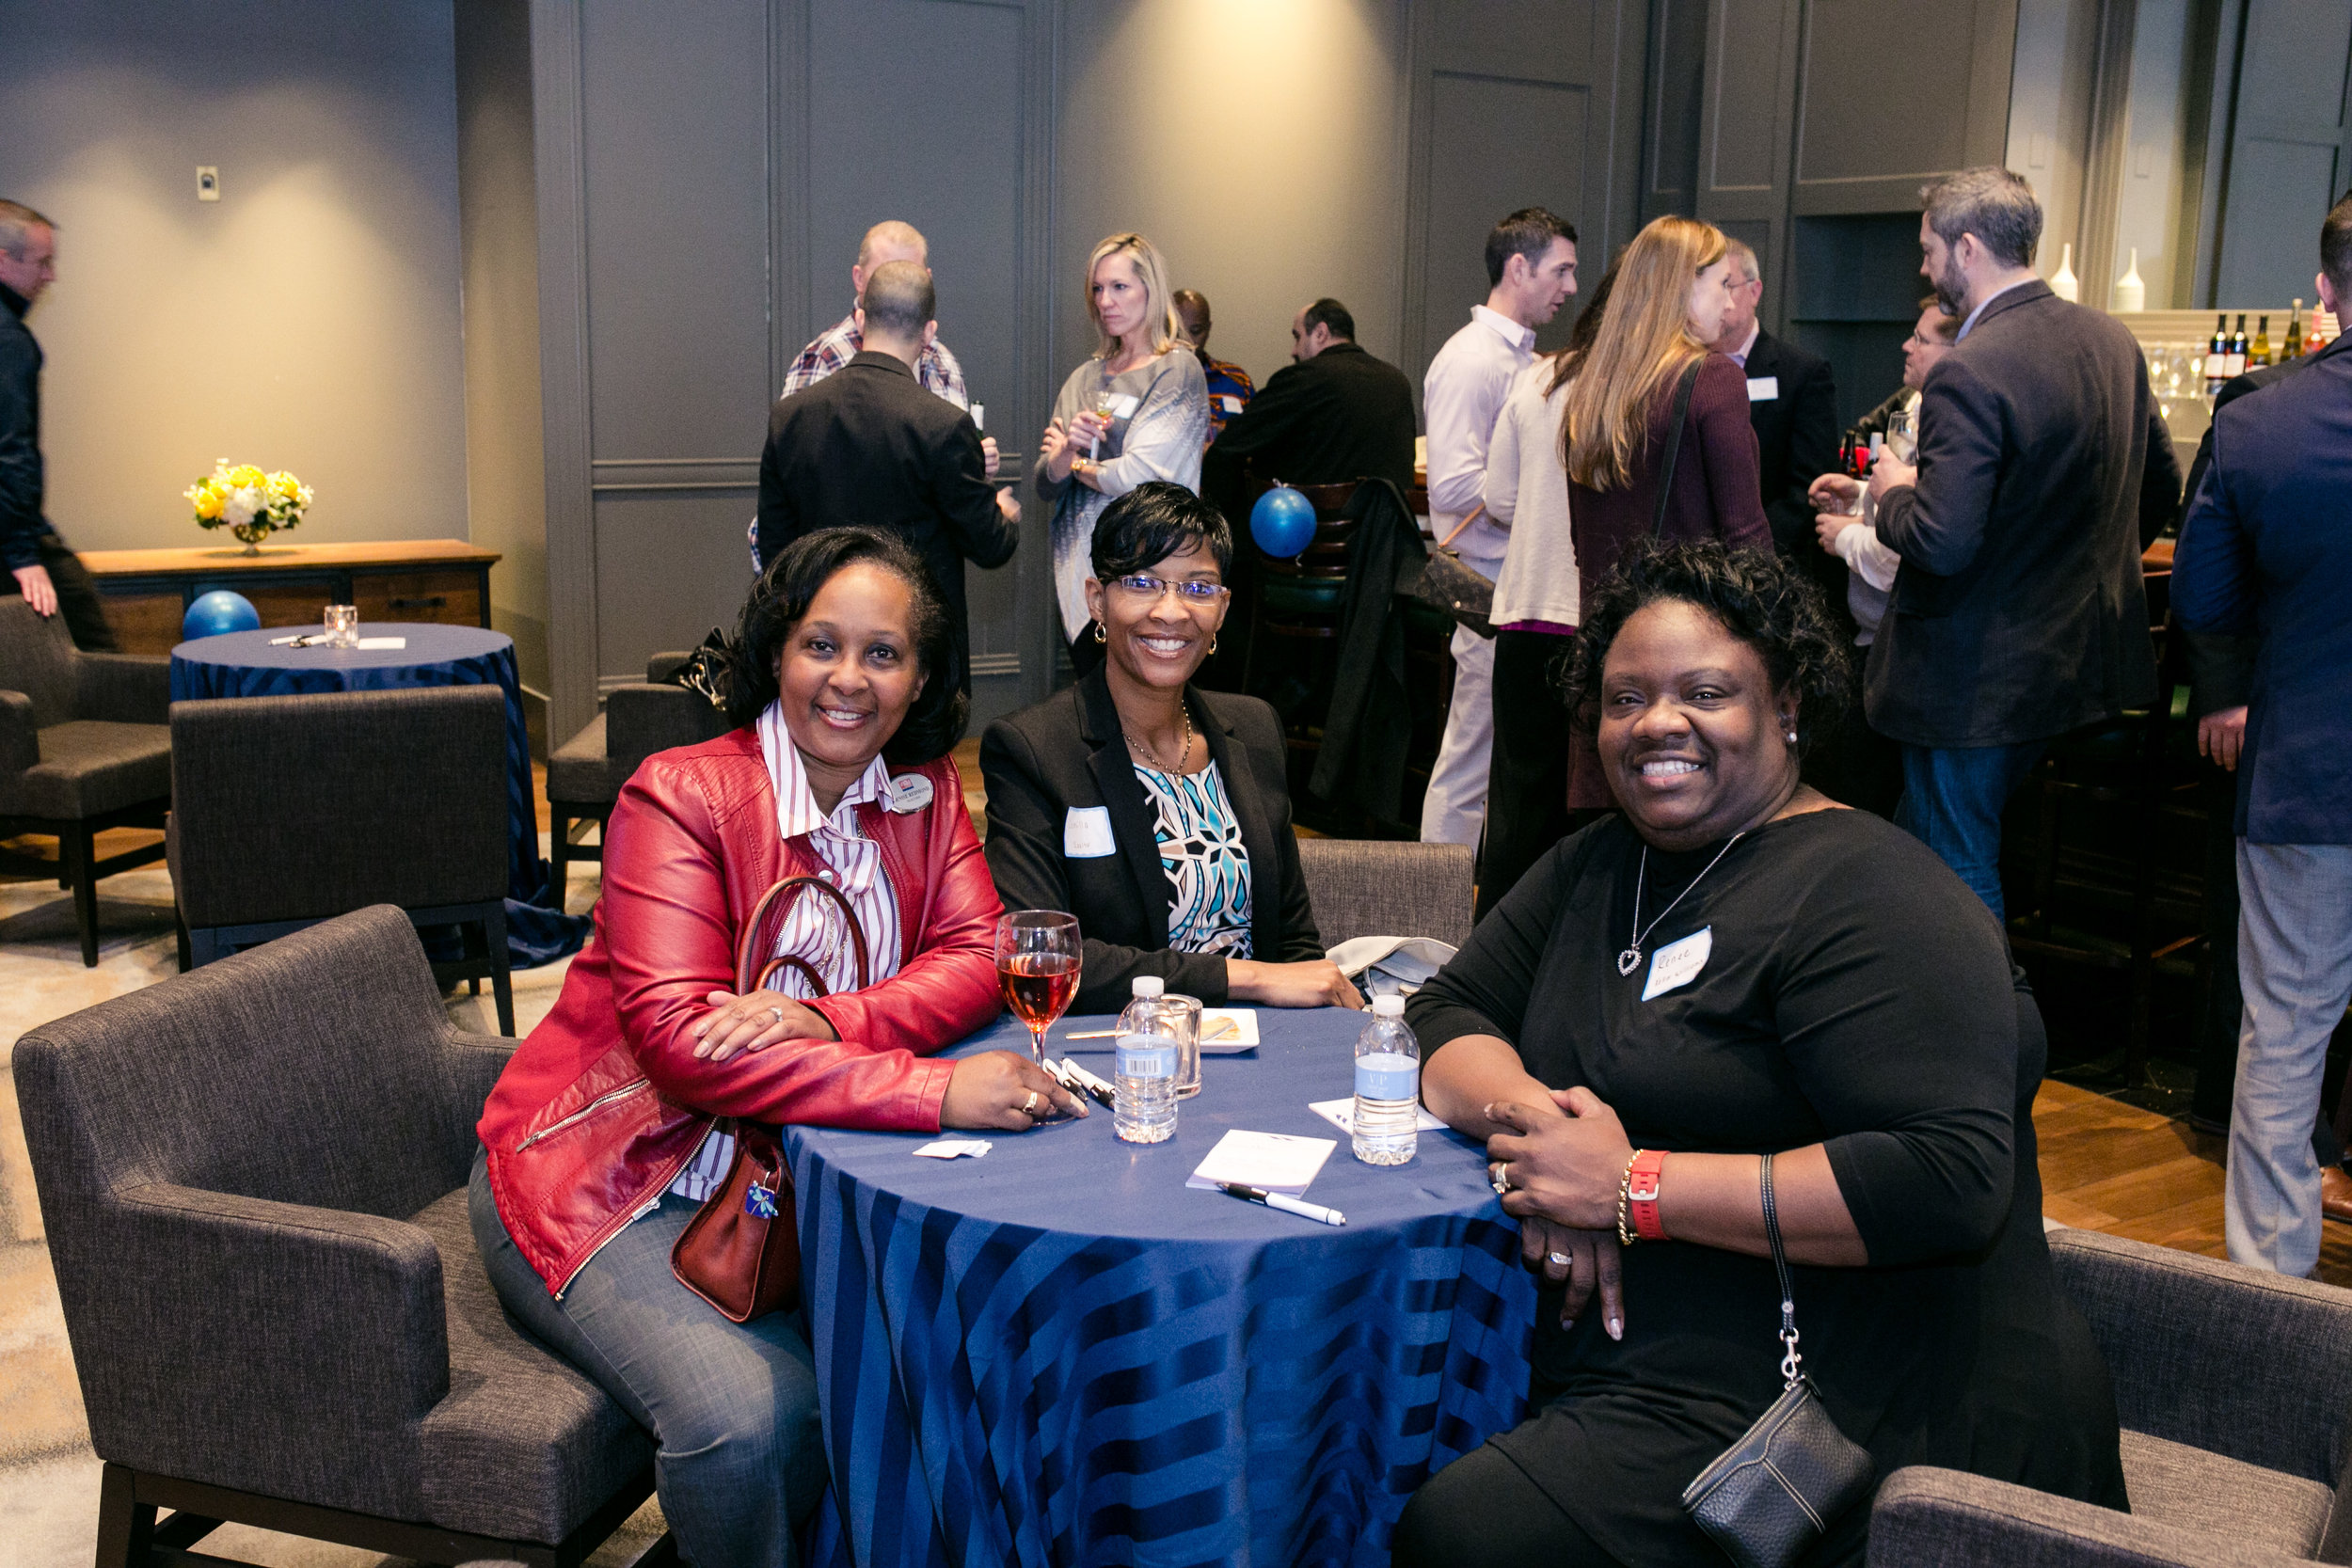 Fellowship_Marriott_Baltimore-0116.jpg